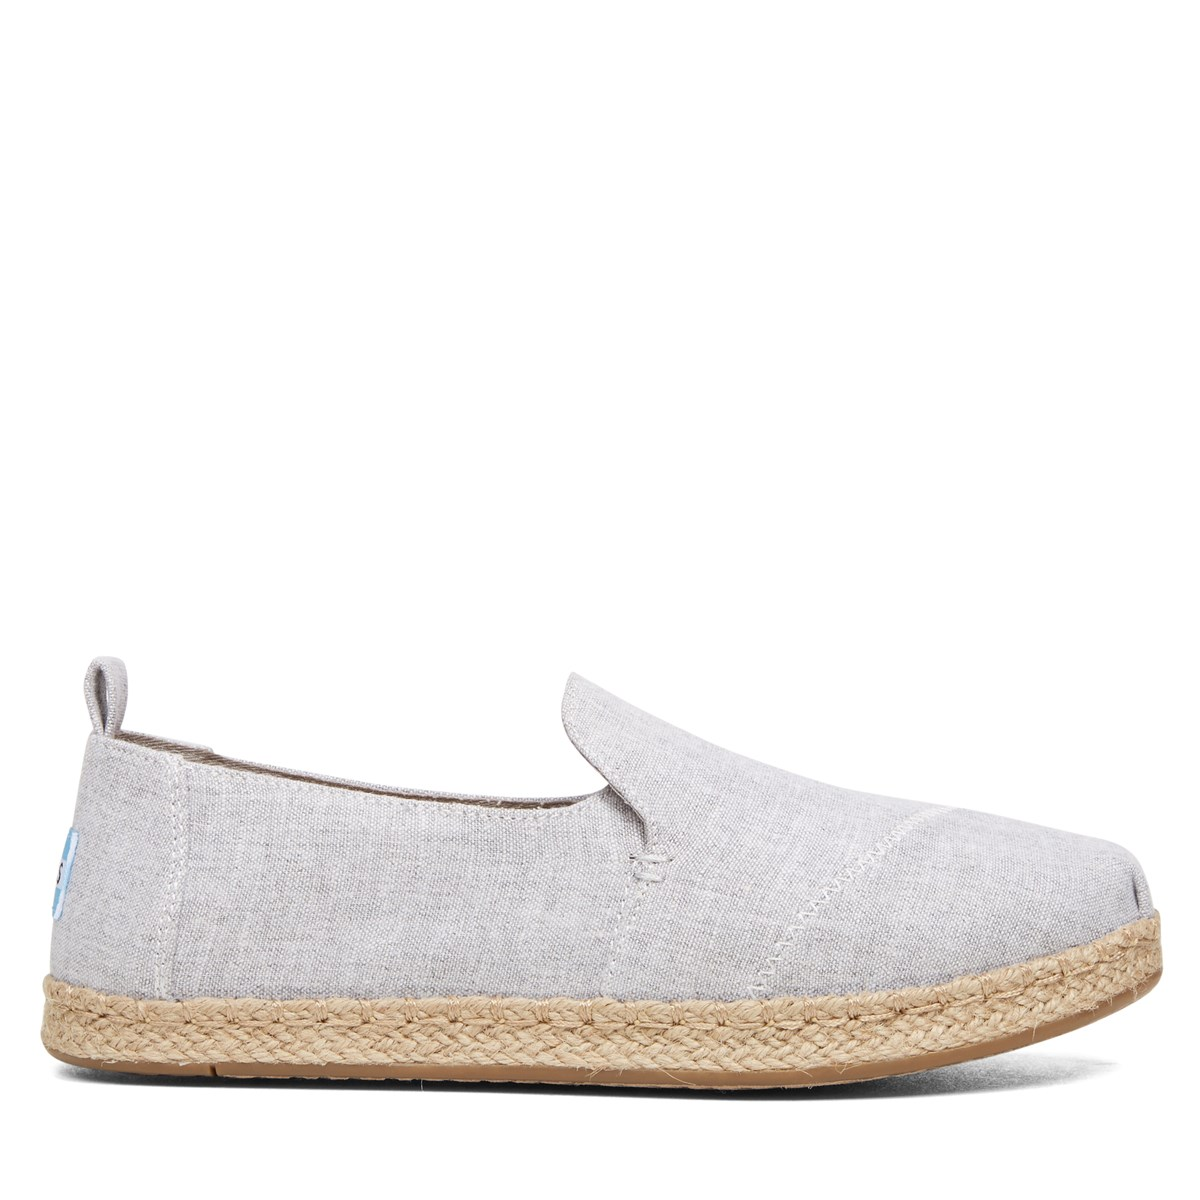 Women's Alpargata Slip-On Espadrille